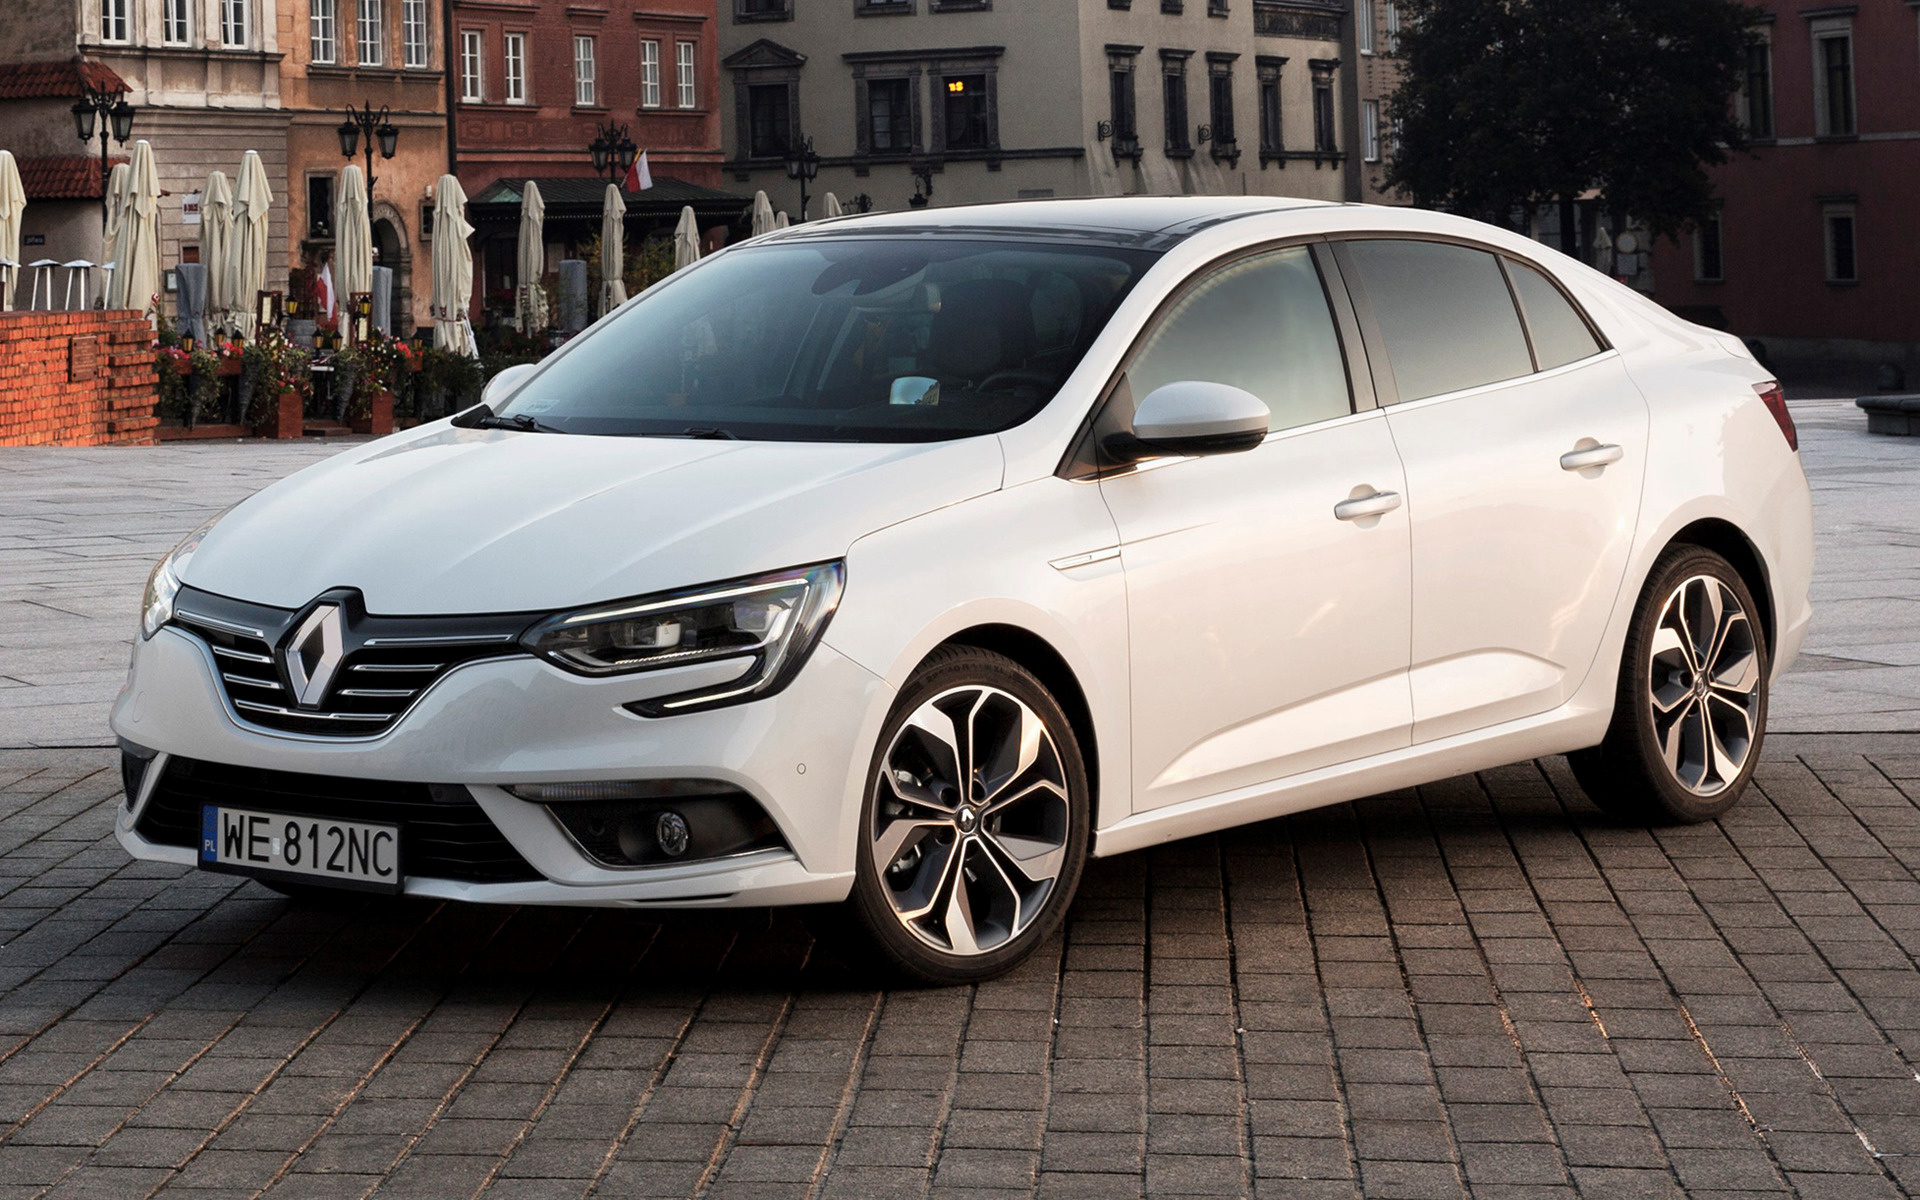 2016 Renault Megane Sedan Wallpapers And Hd Images Car Pixel